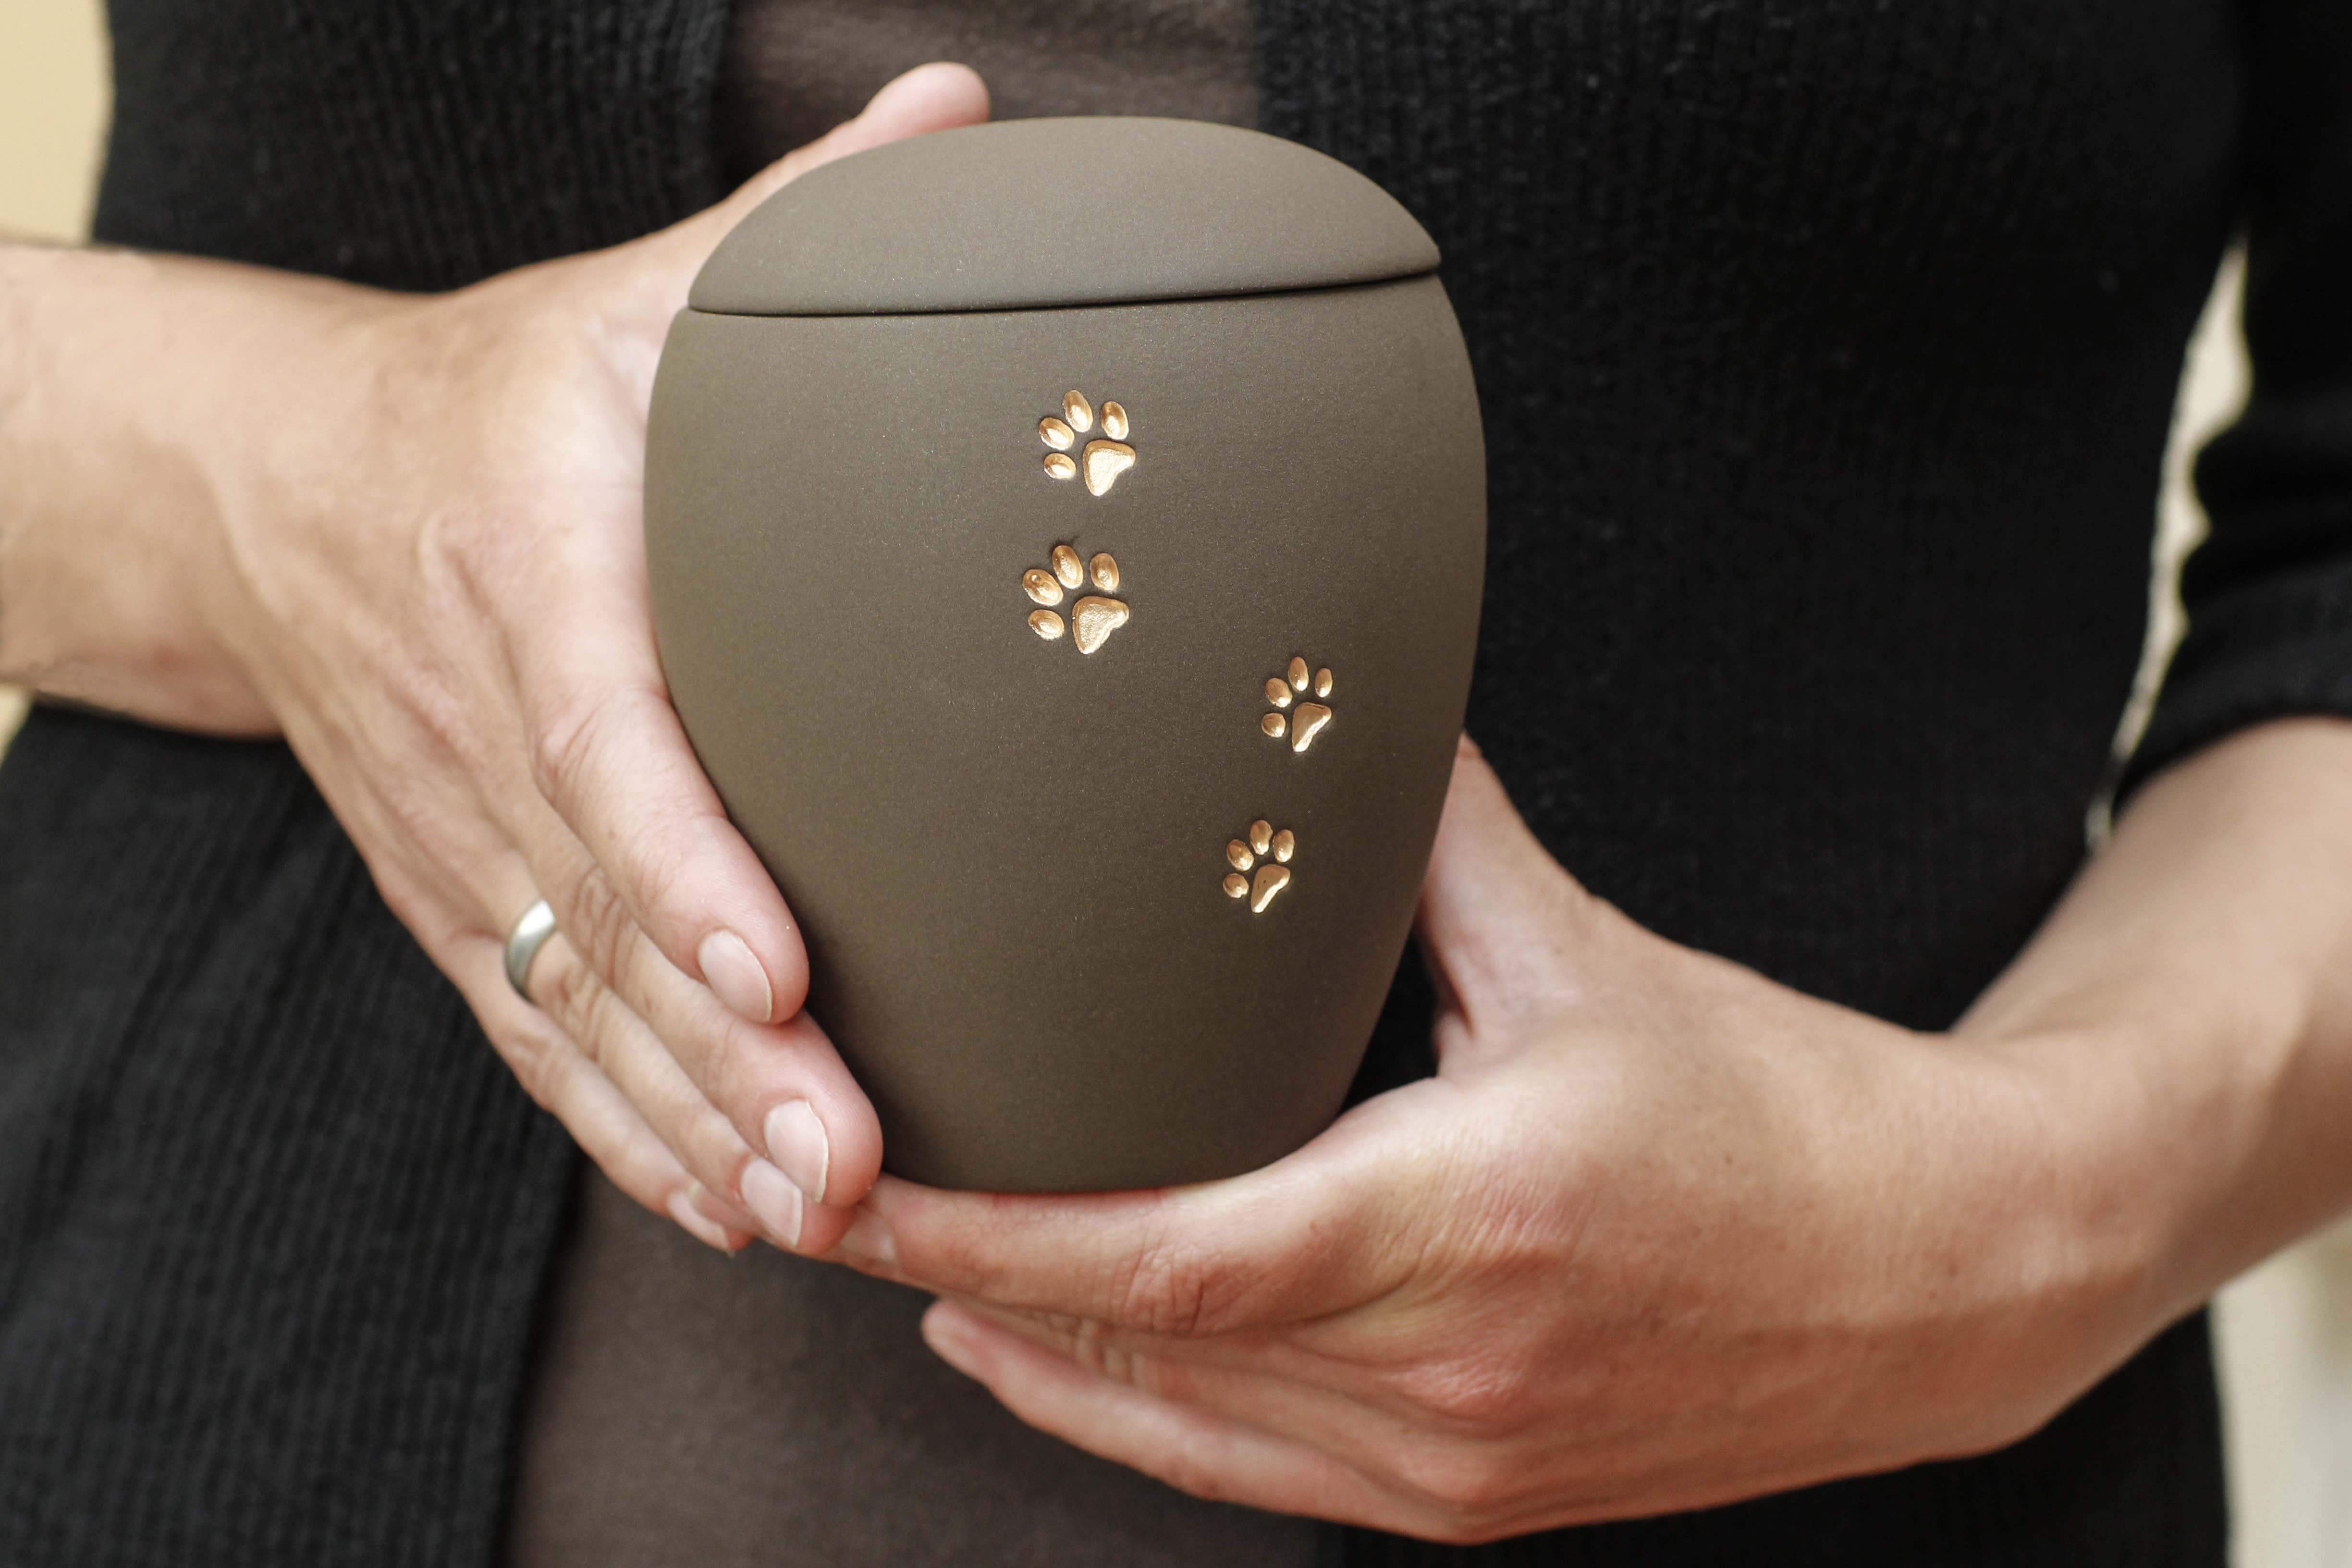 Yahoo Poll: Are tighter rules needed for the pet cremation industry?